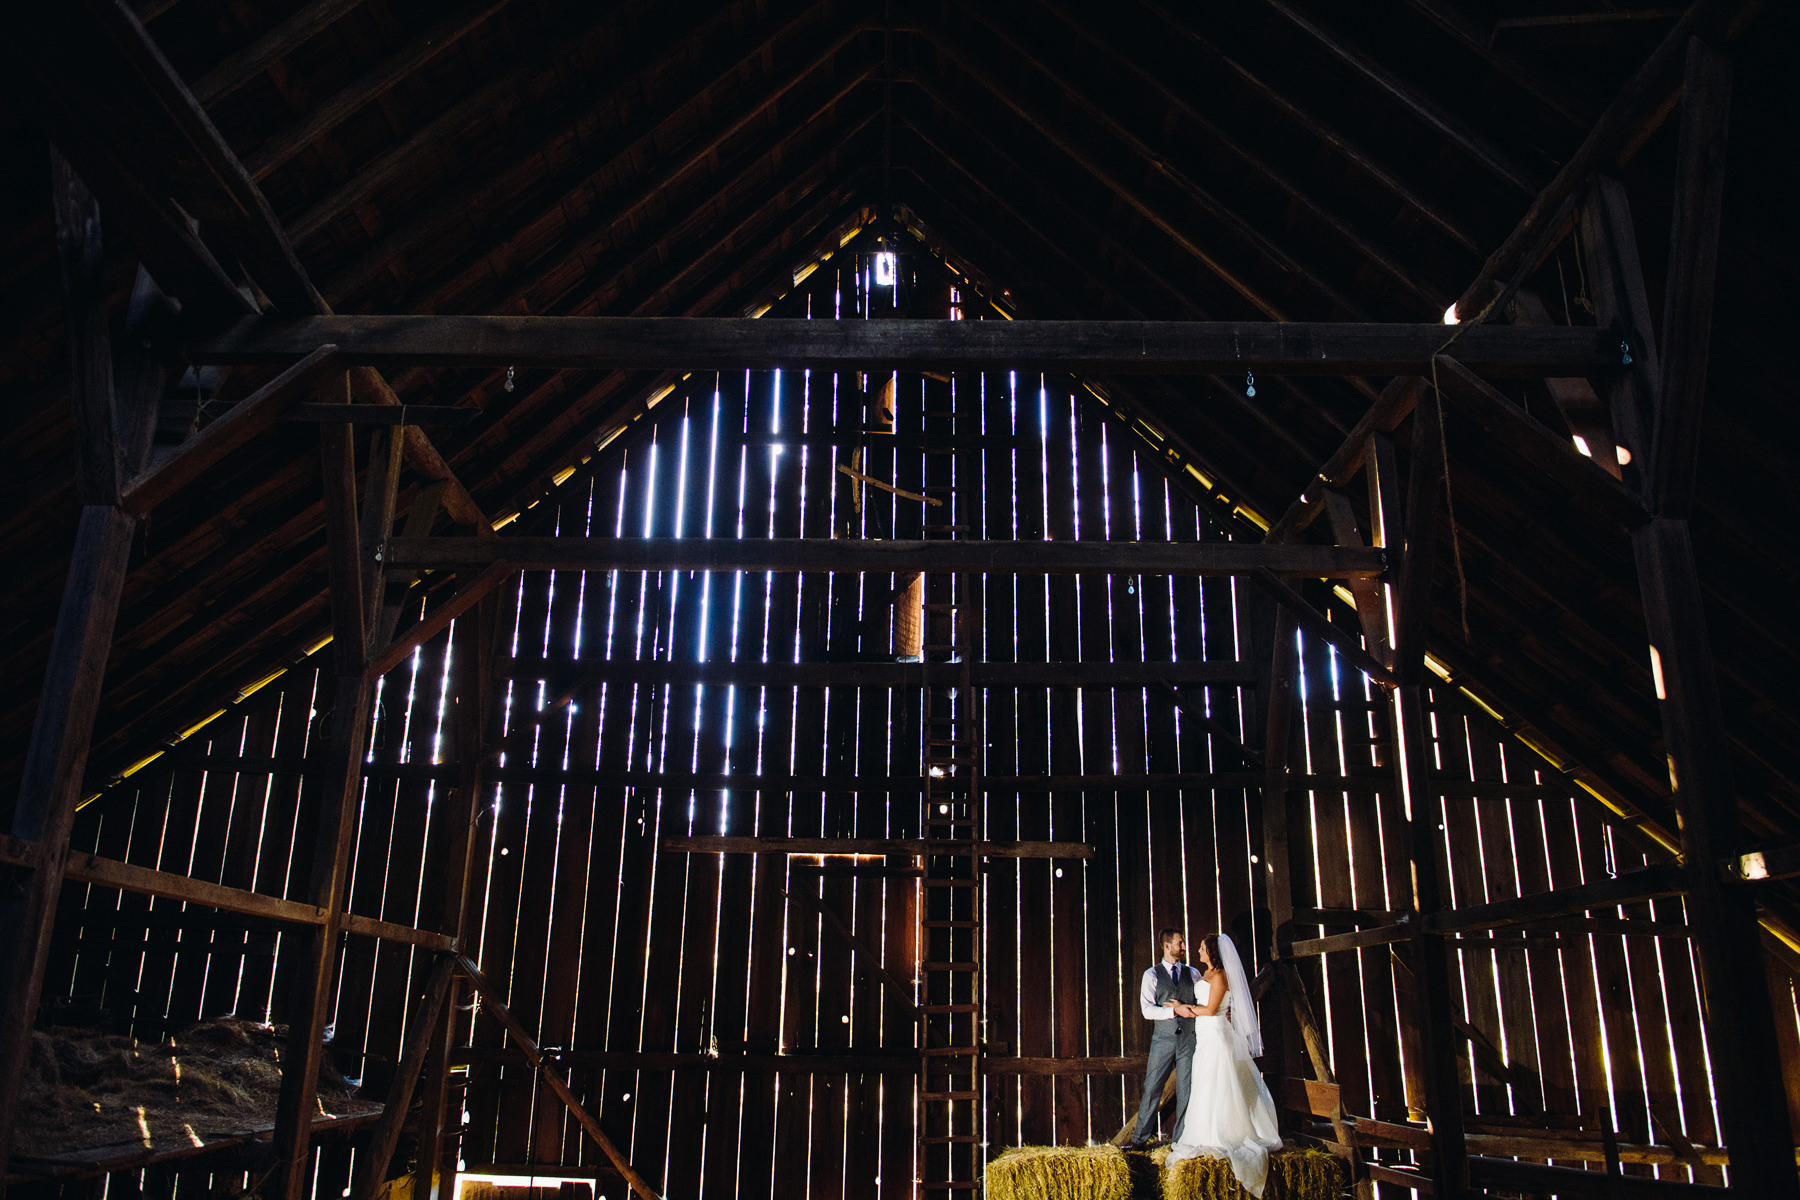 Pomeroy Farms barn wedding photos